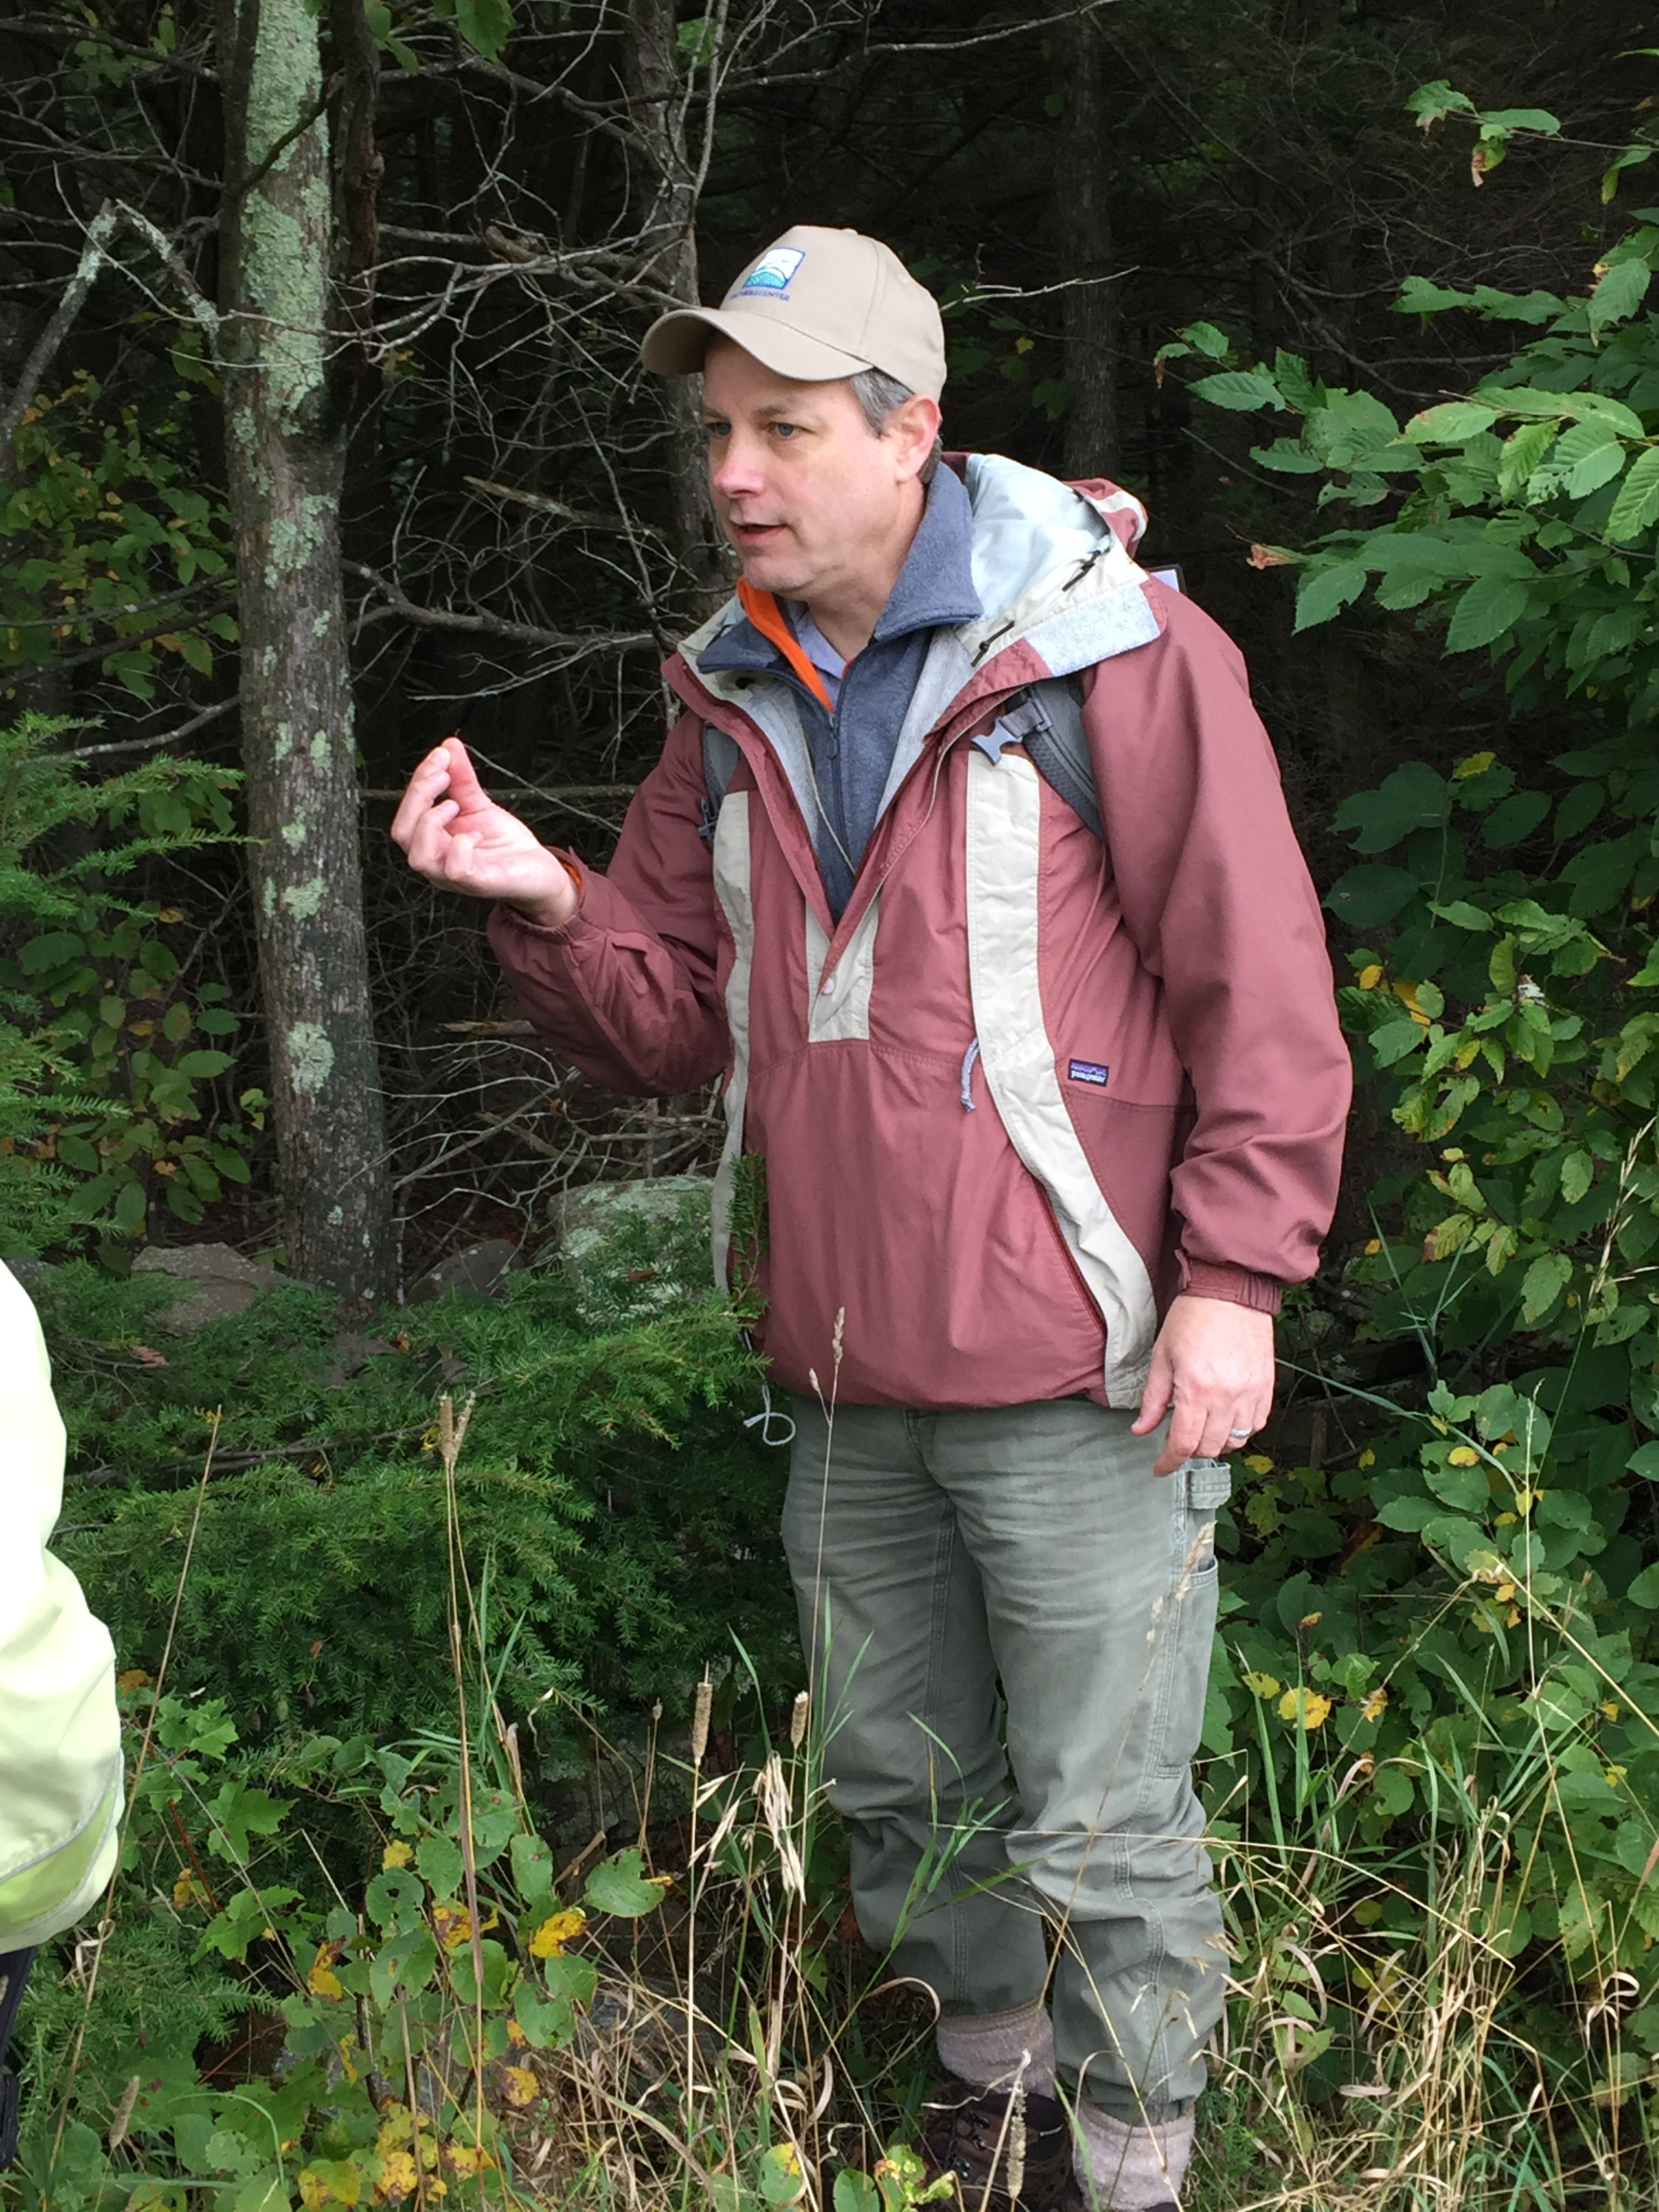 Catskill Regional Invasive Species Partnership Coordinator, John Thompson examines a Hemlock